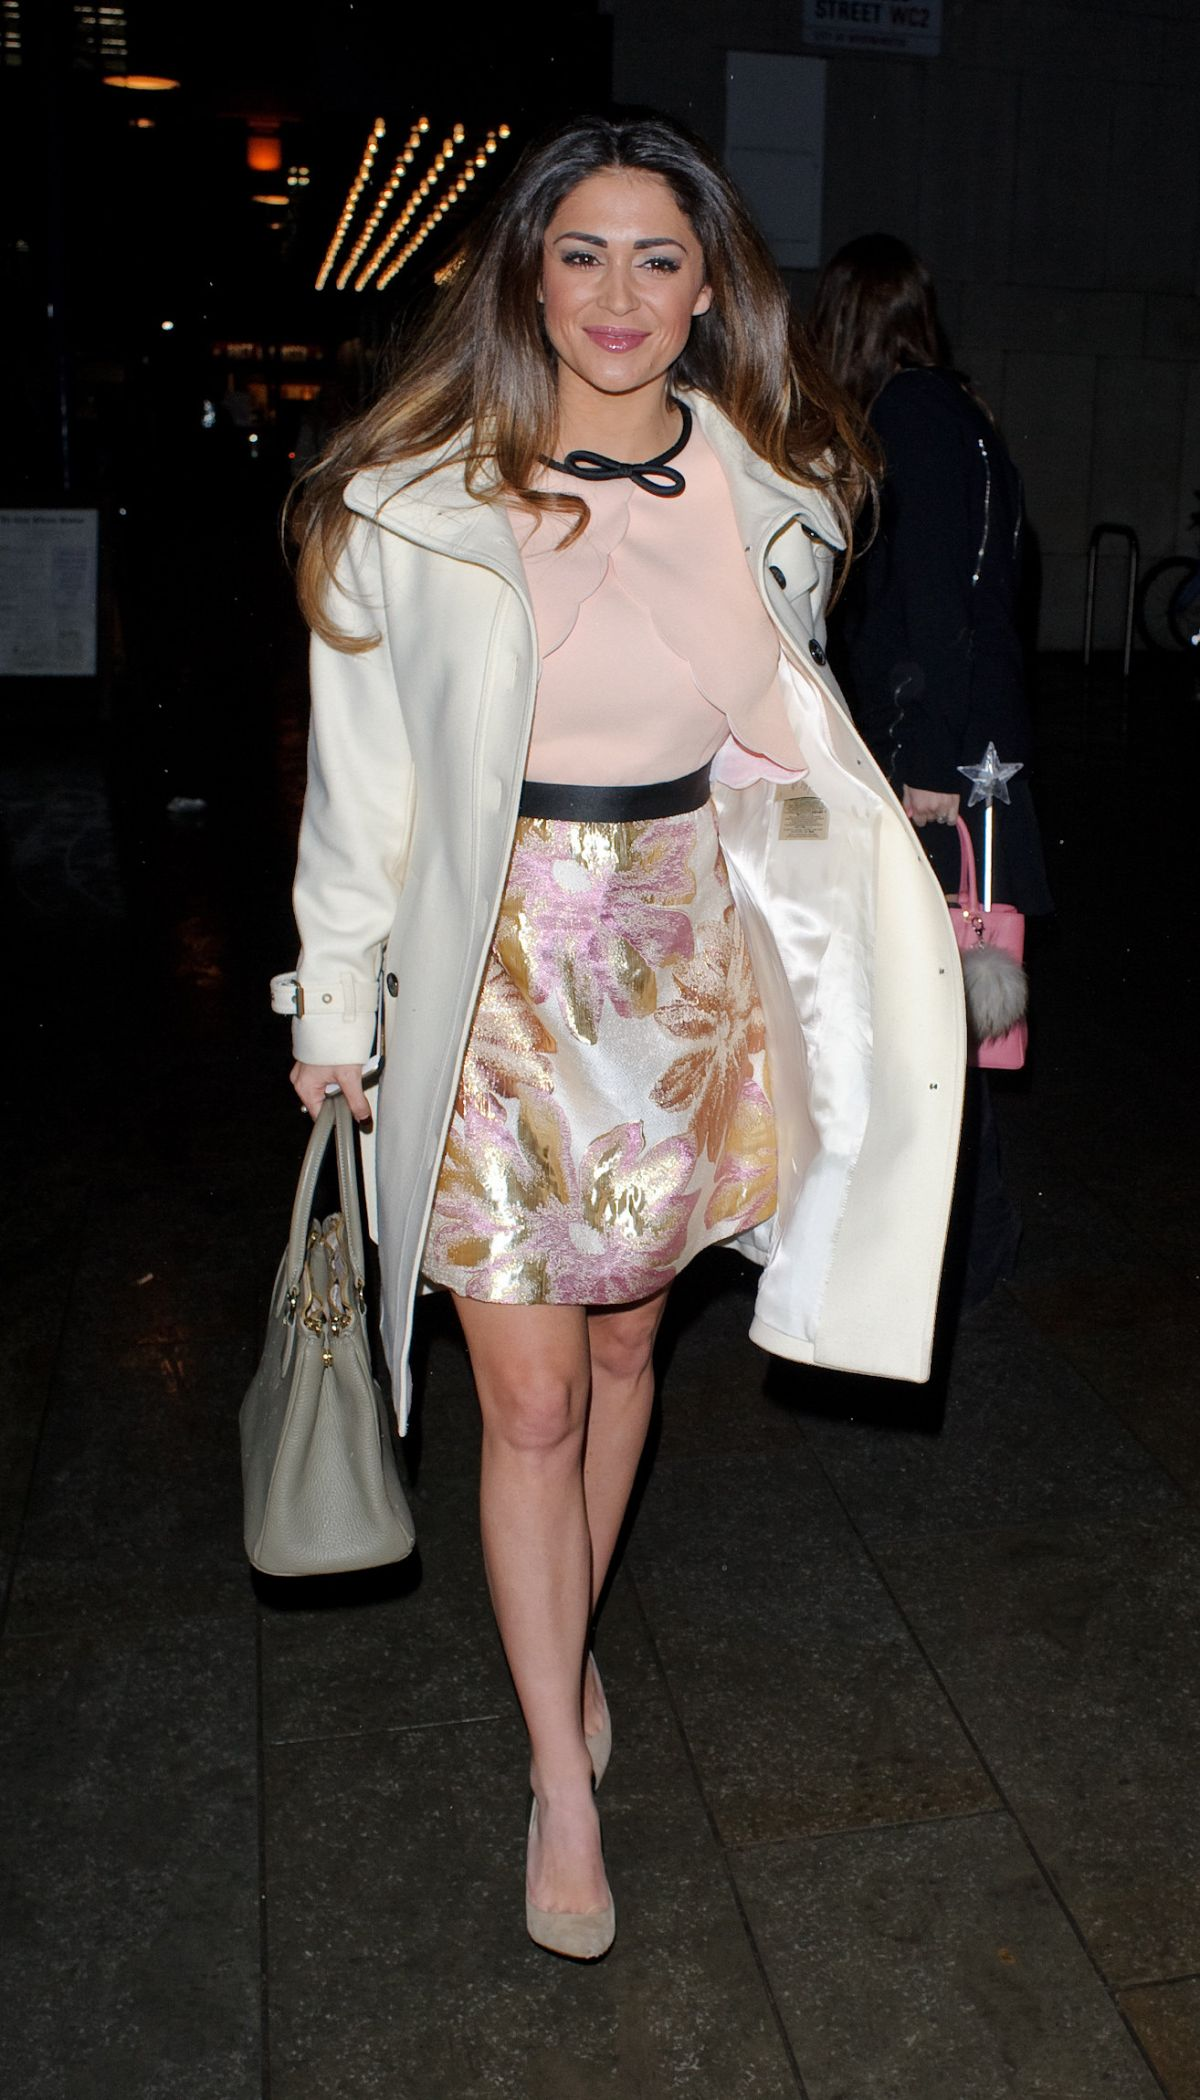 Casey Batchelor Leaves Peacock Theatre In London 02 09